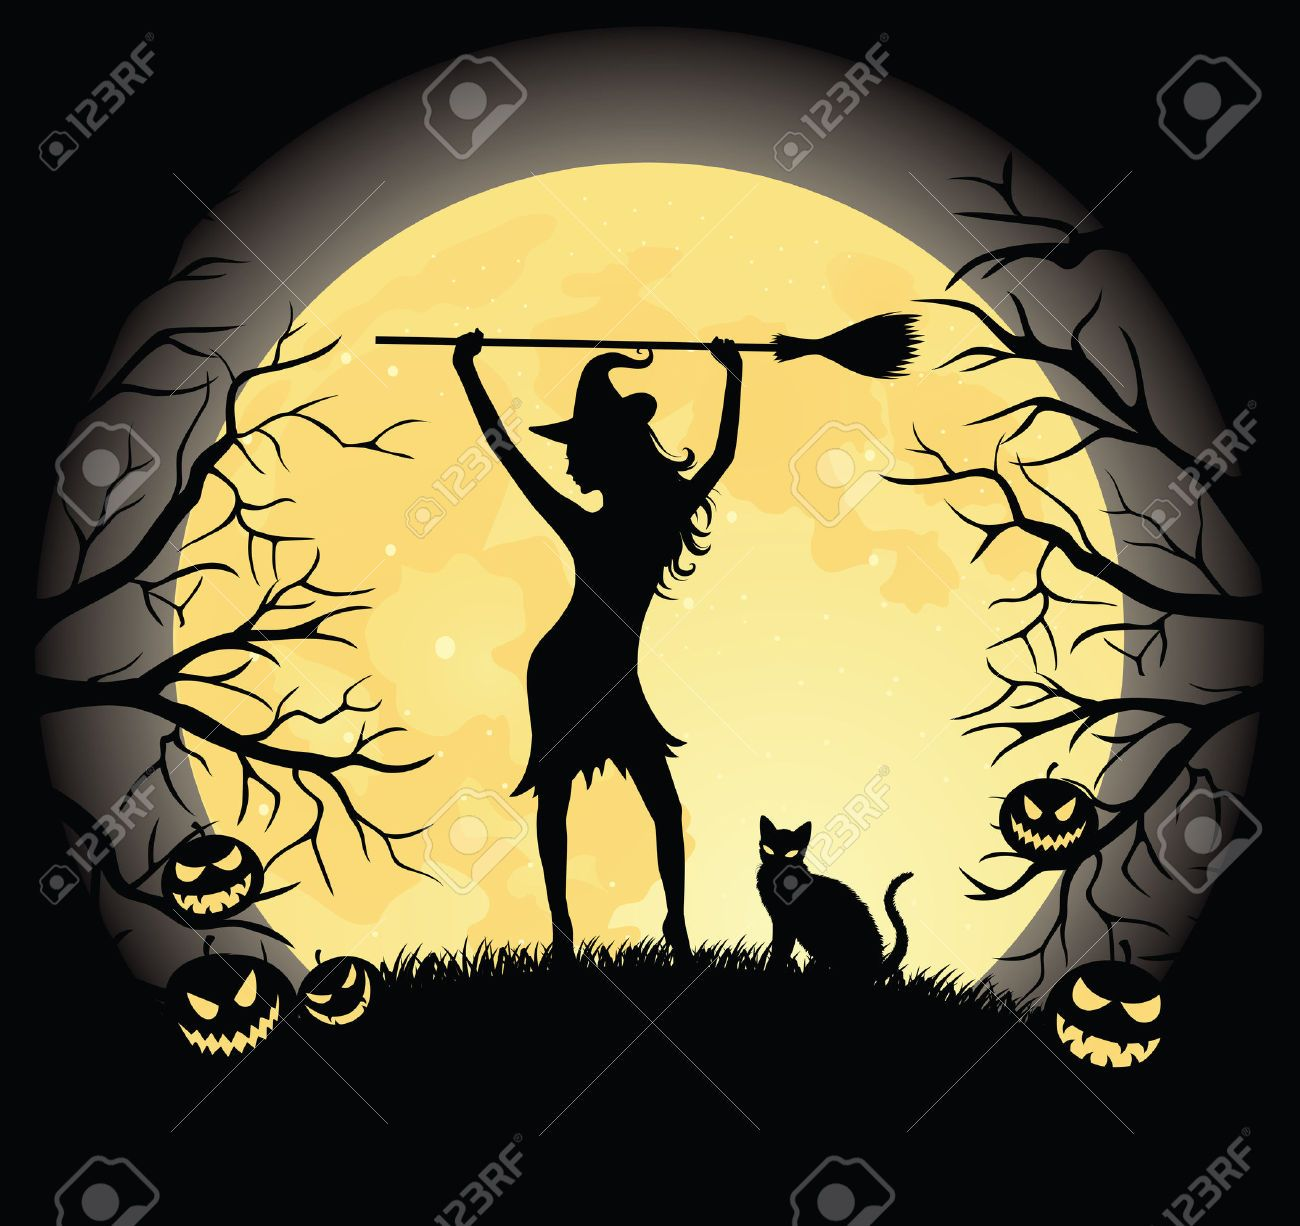 Silhouette of a witch with a broom and a cat standing on a